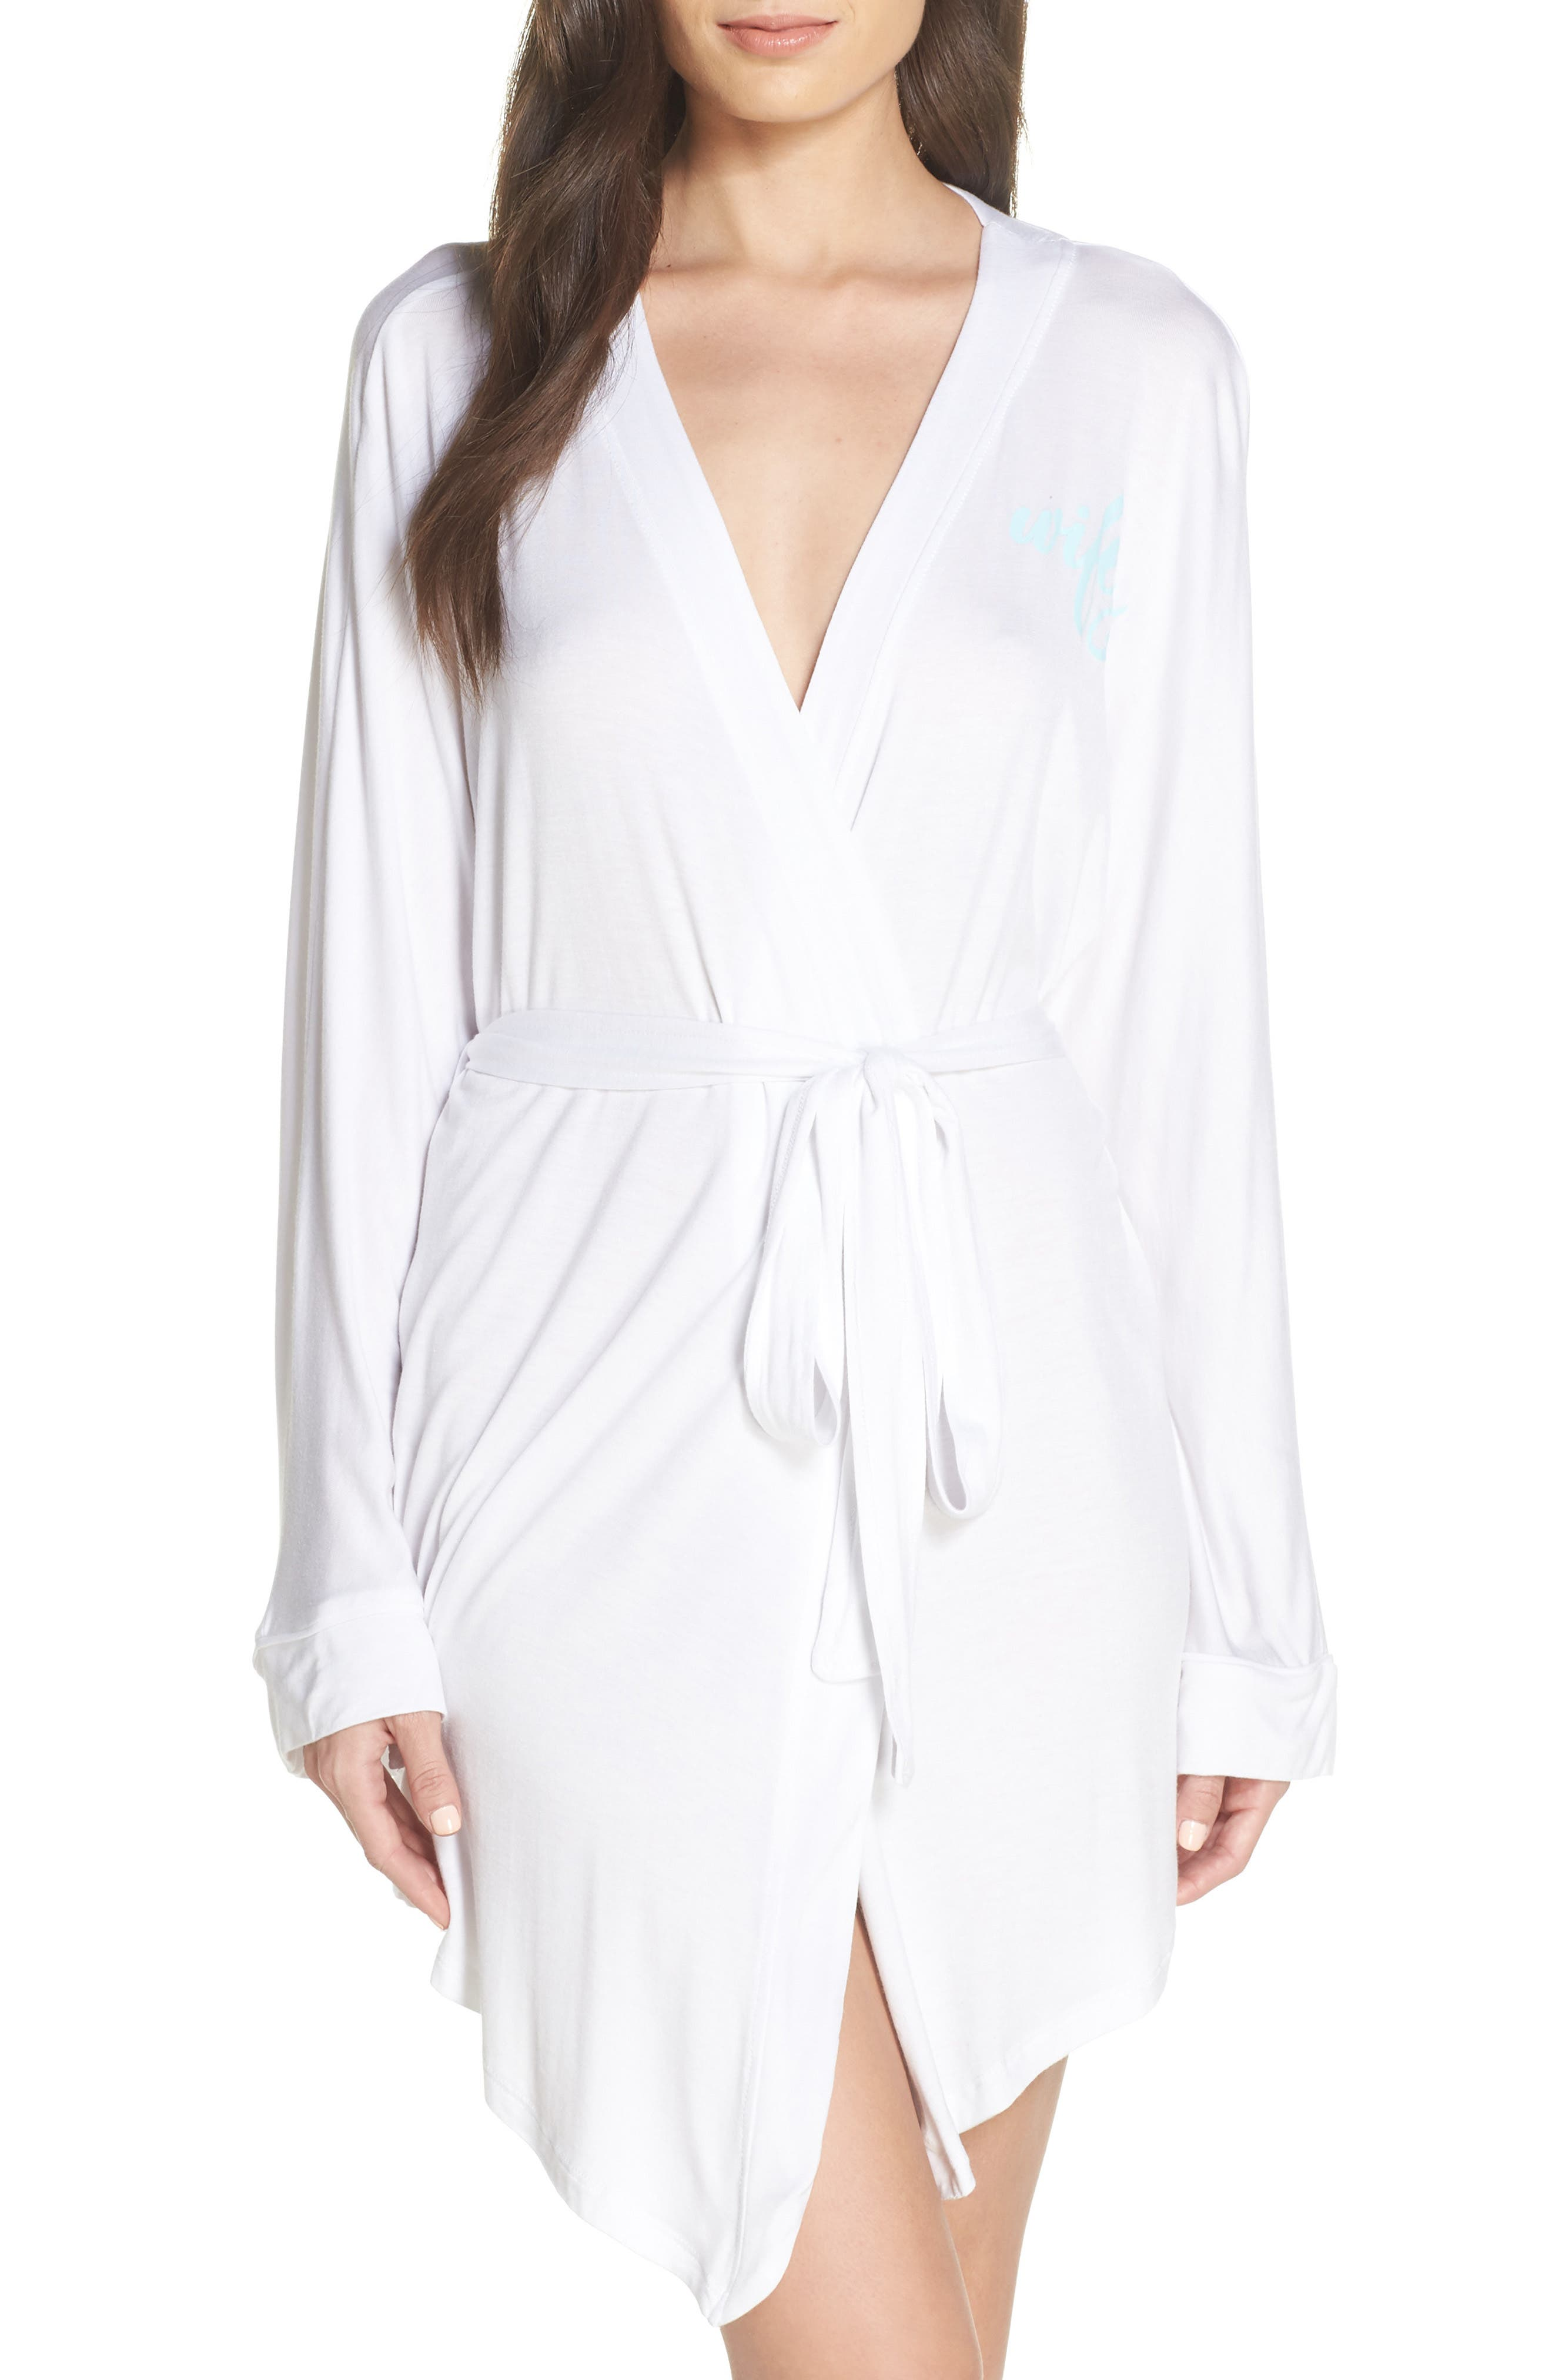 This honeymoon-appropriate robe with \\\